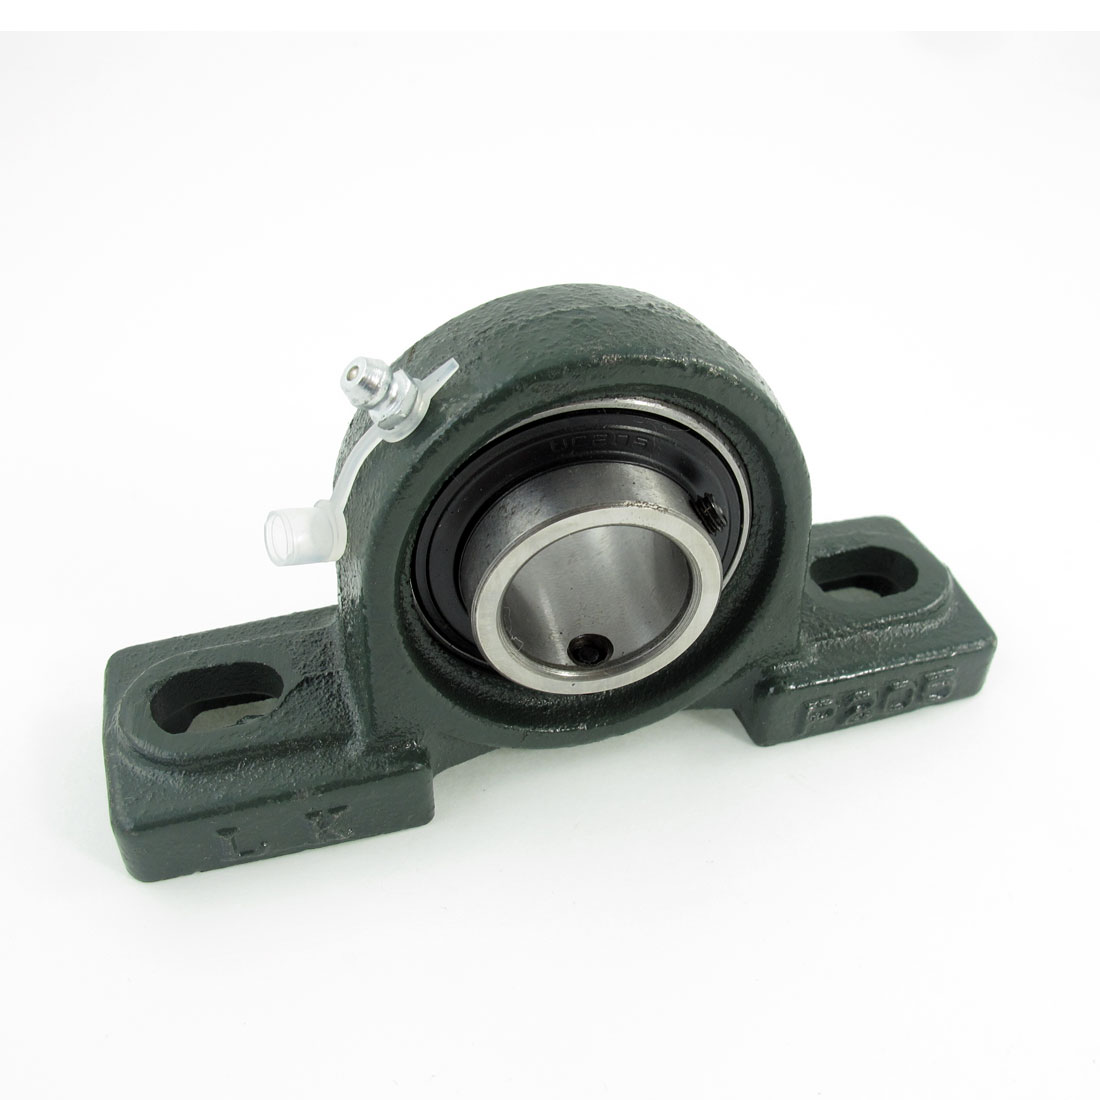 UC205 25mm Bore Self-aligning Vertical Mounted Flange Bearing P205